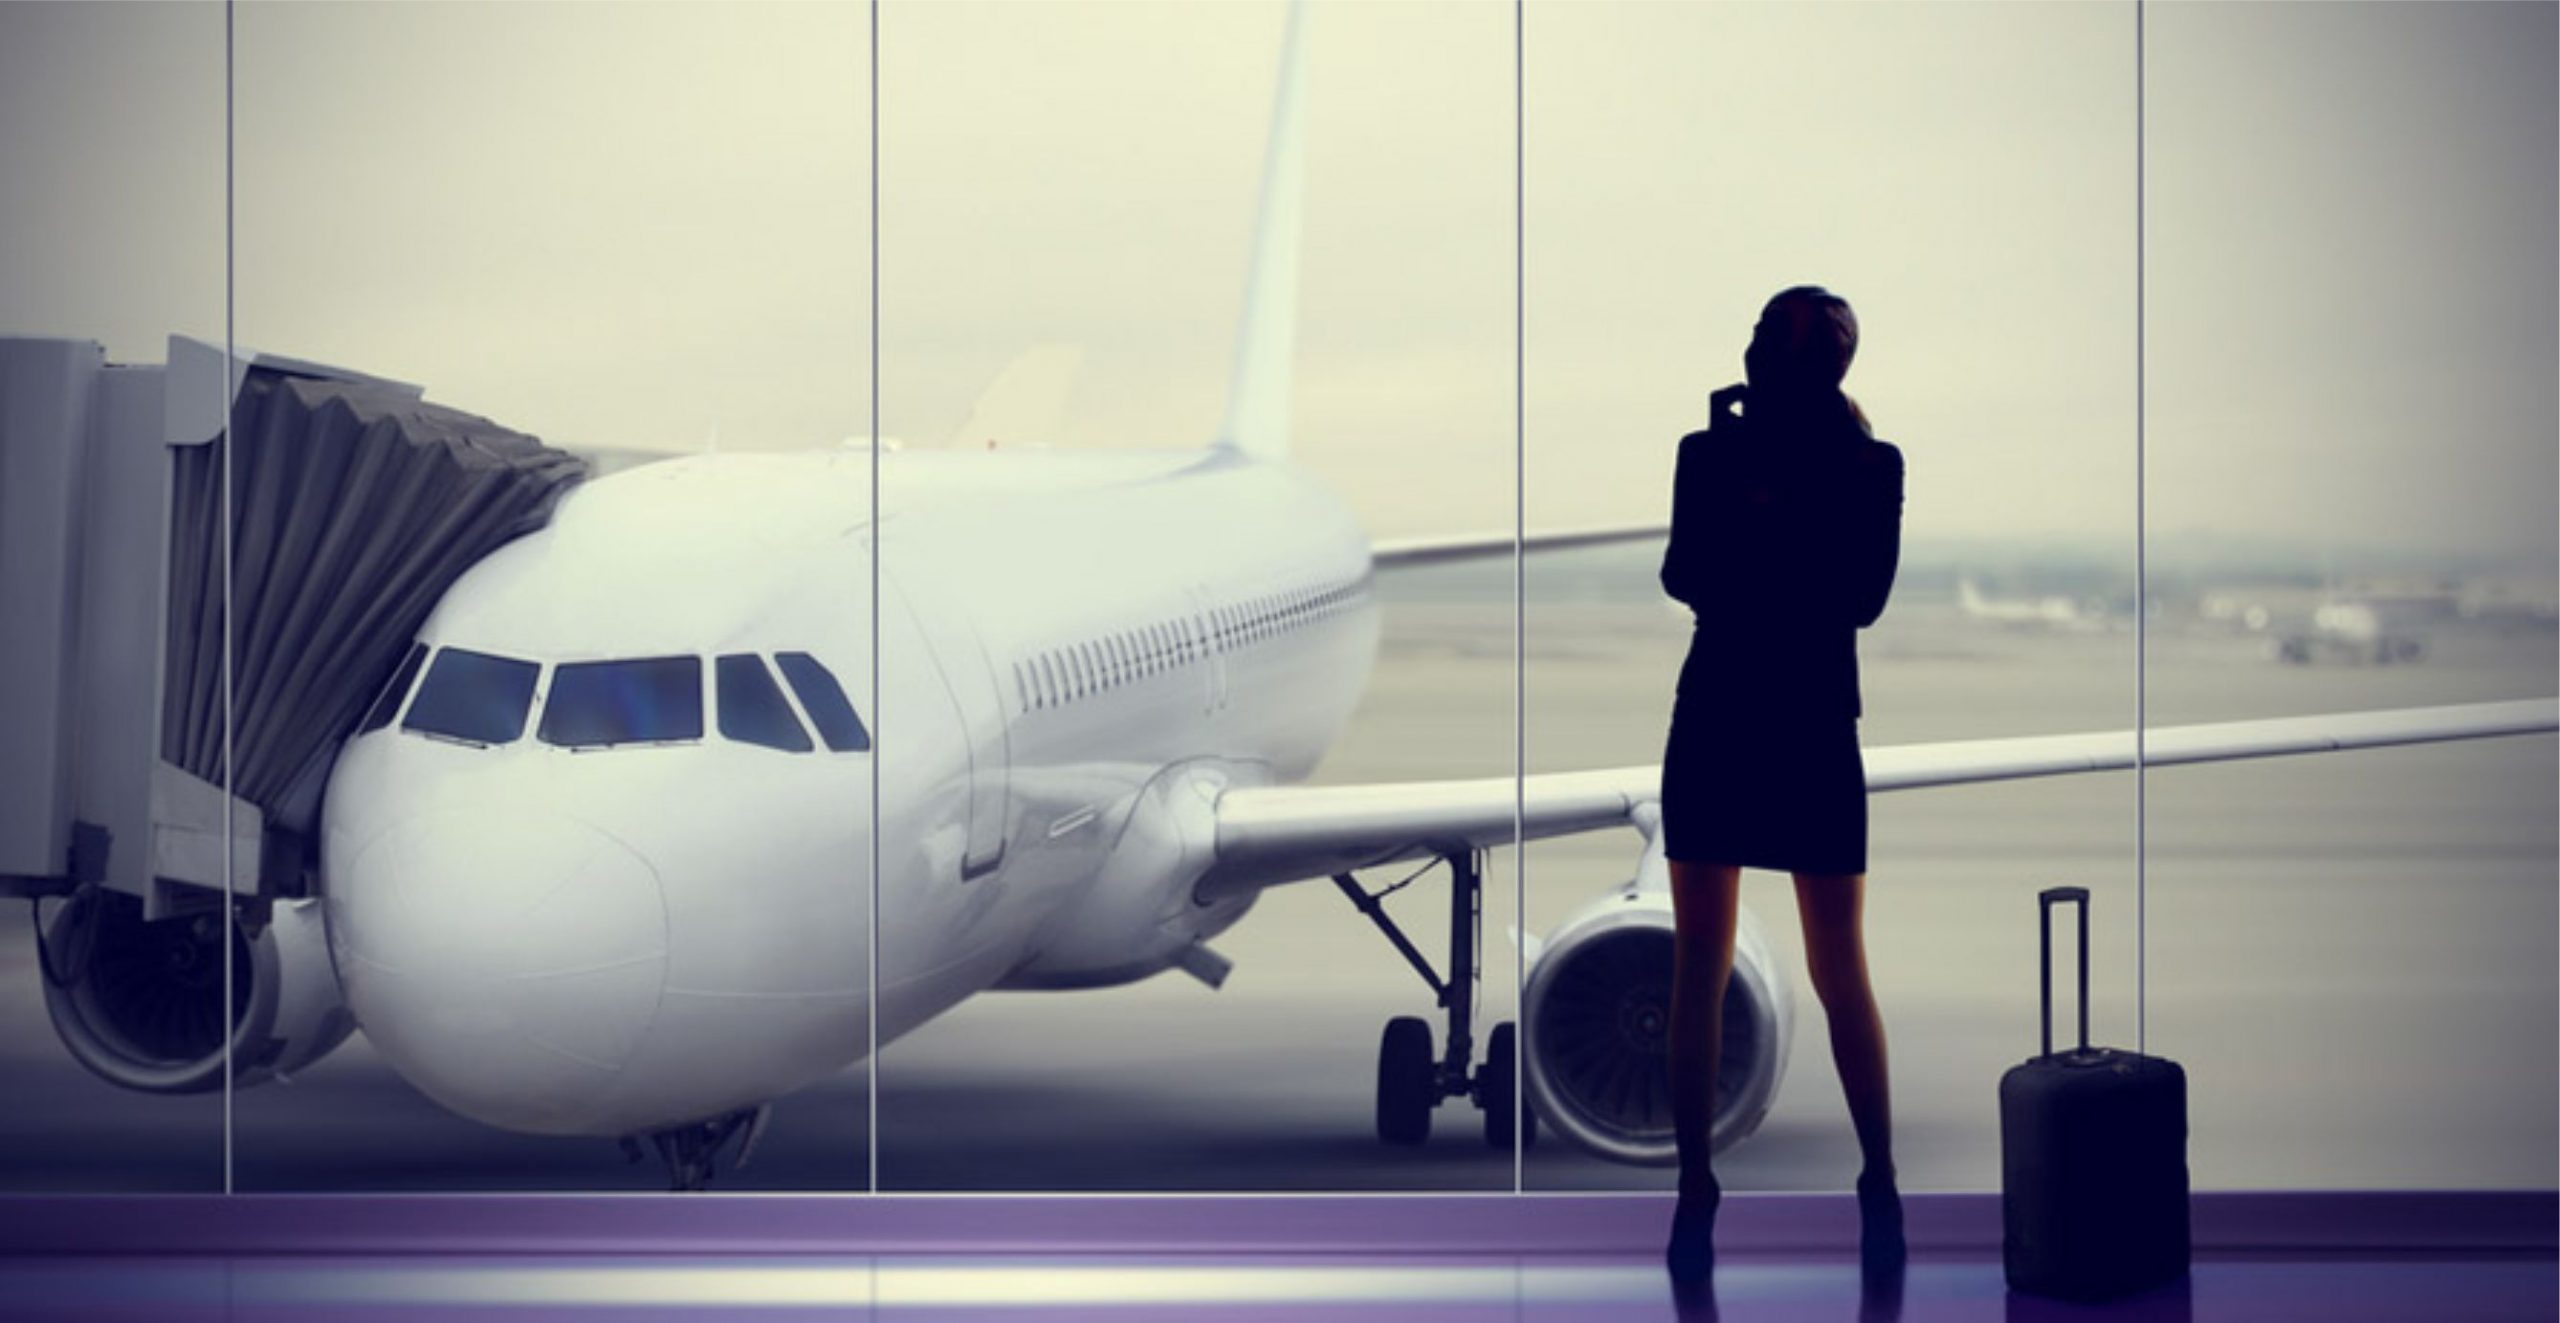 5 REASONS WHY PEOPLE TRAVEL